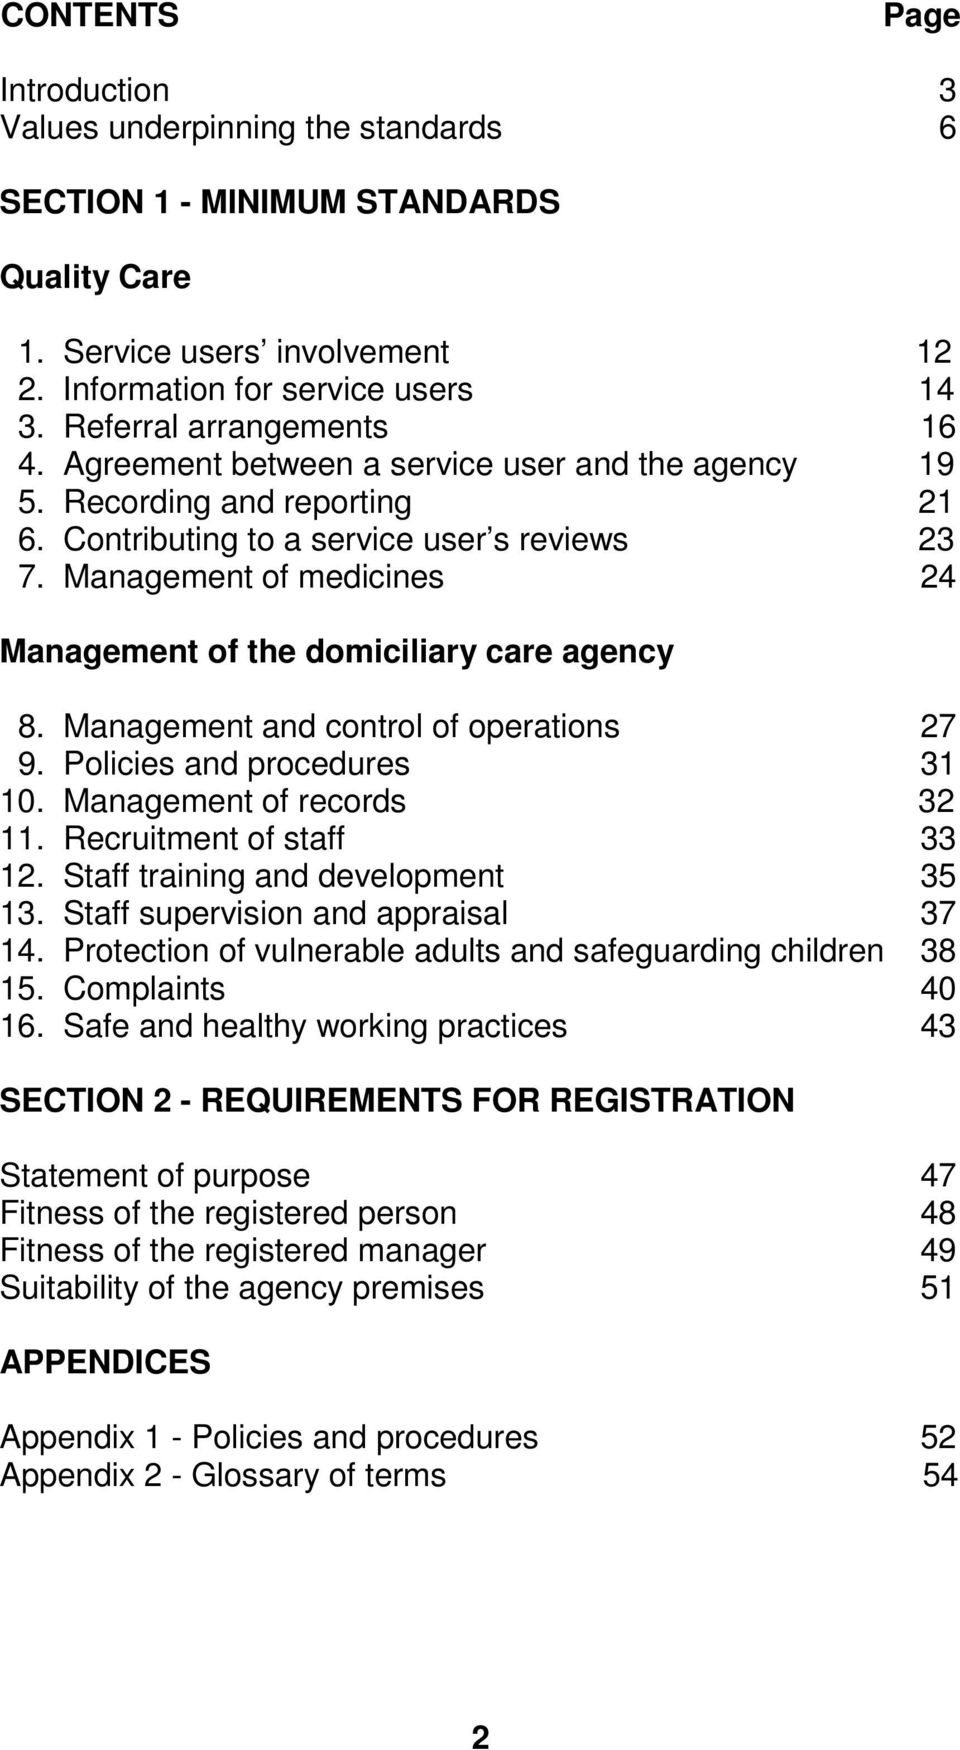 Management of medicines 24 Management of the domiciliary care agency 8. Management and control of operations 27 9. Policies and procedures 31 10. Management of records 32 11.